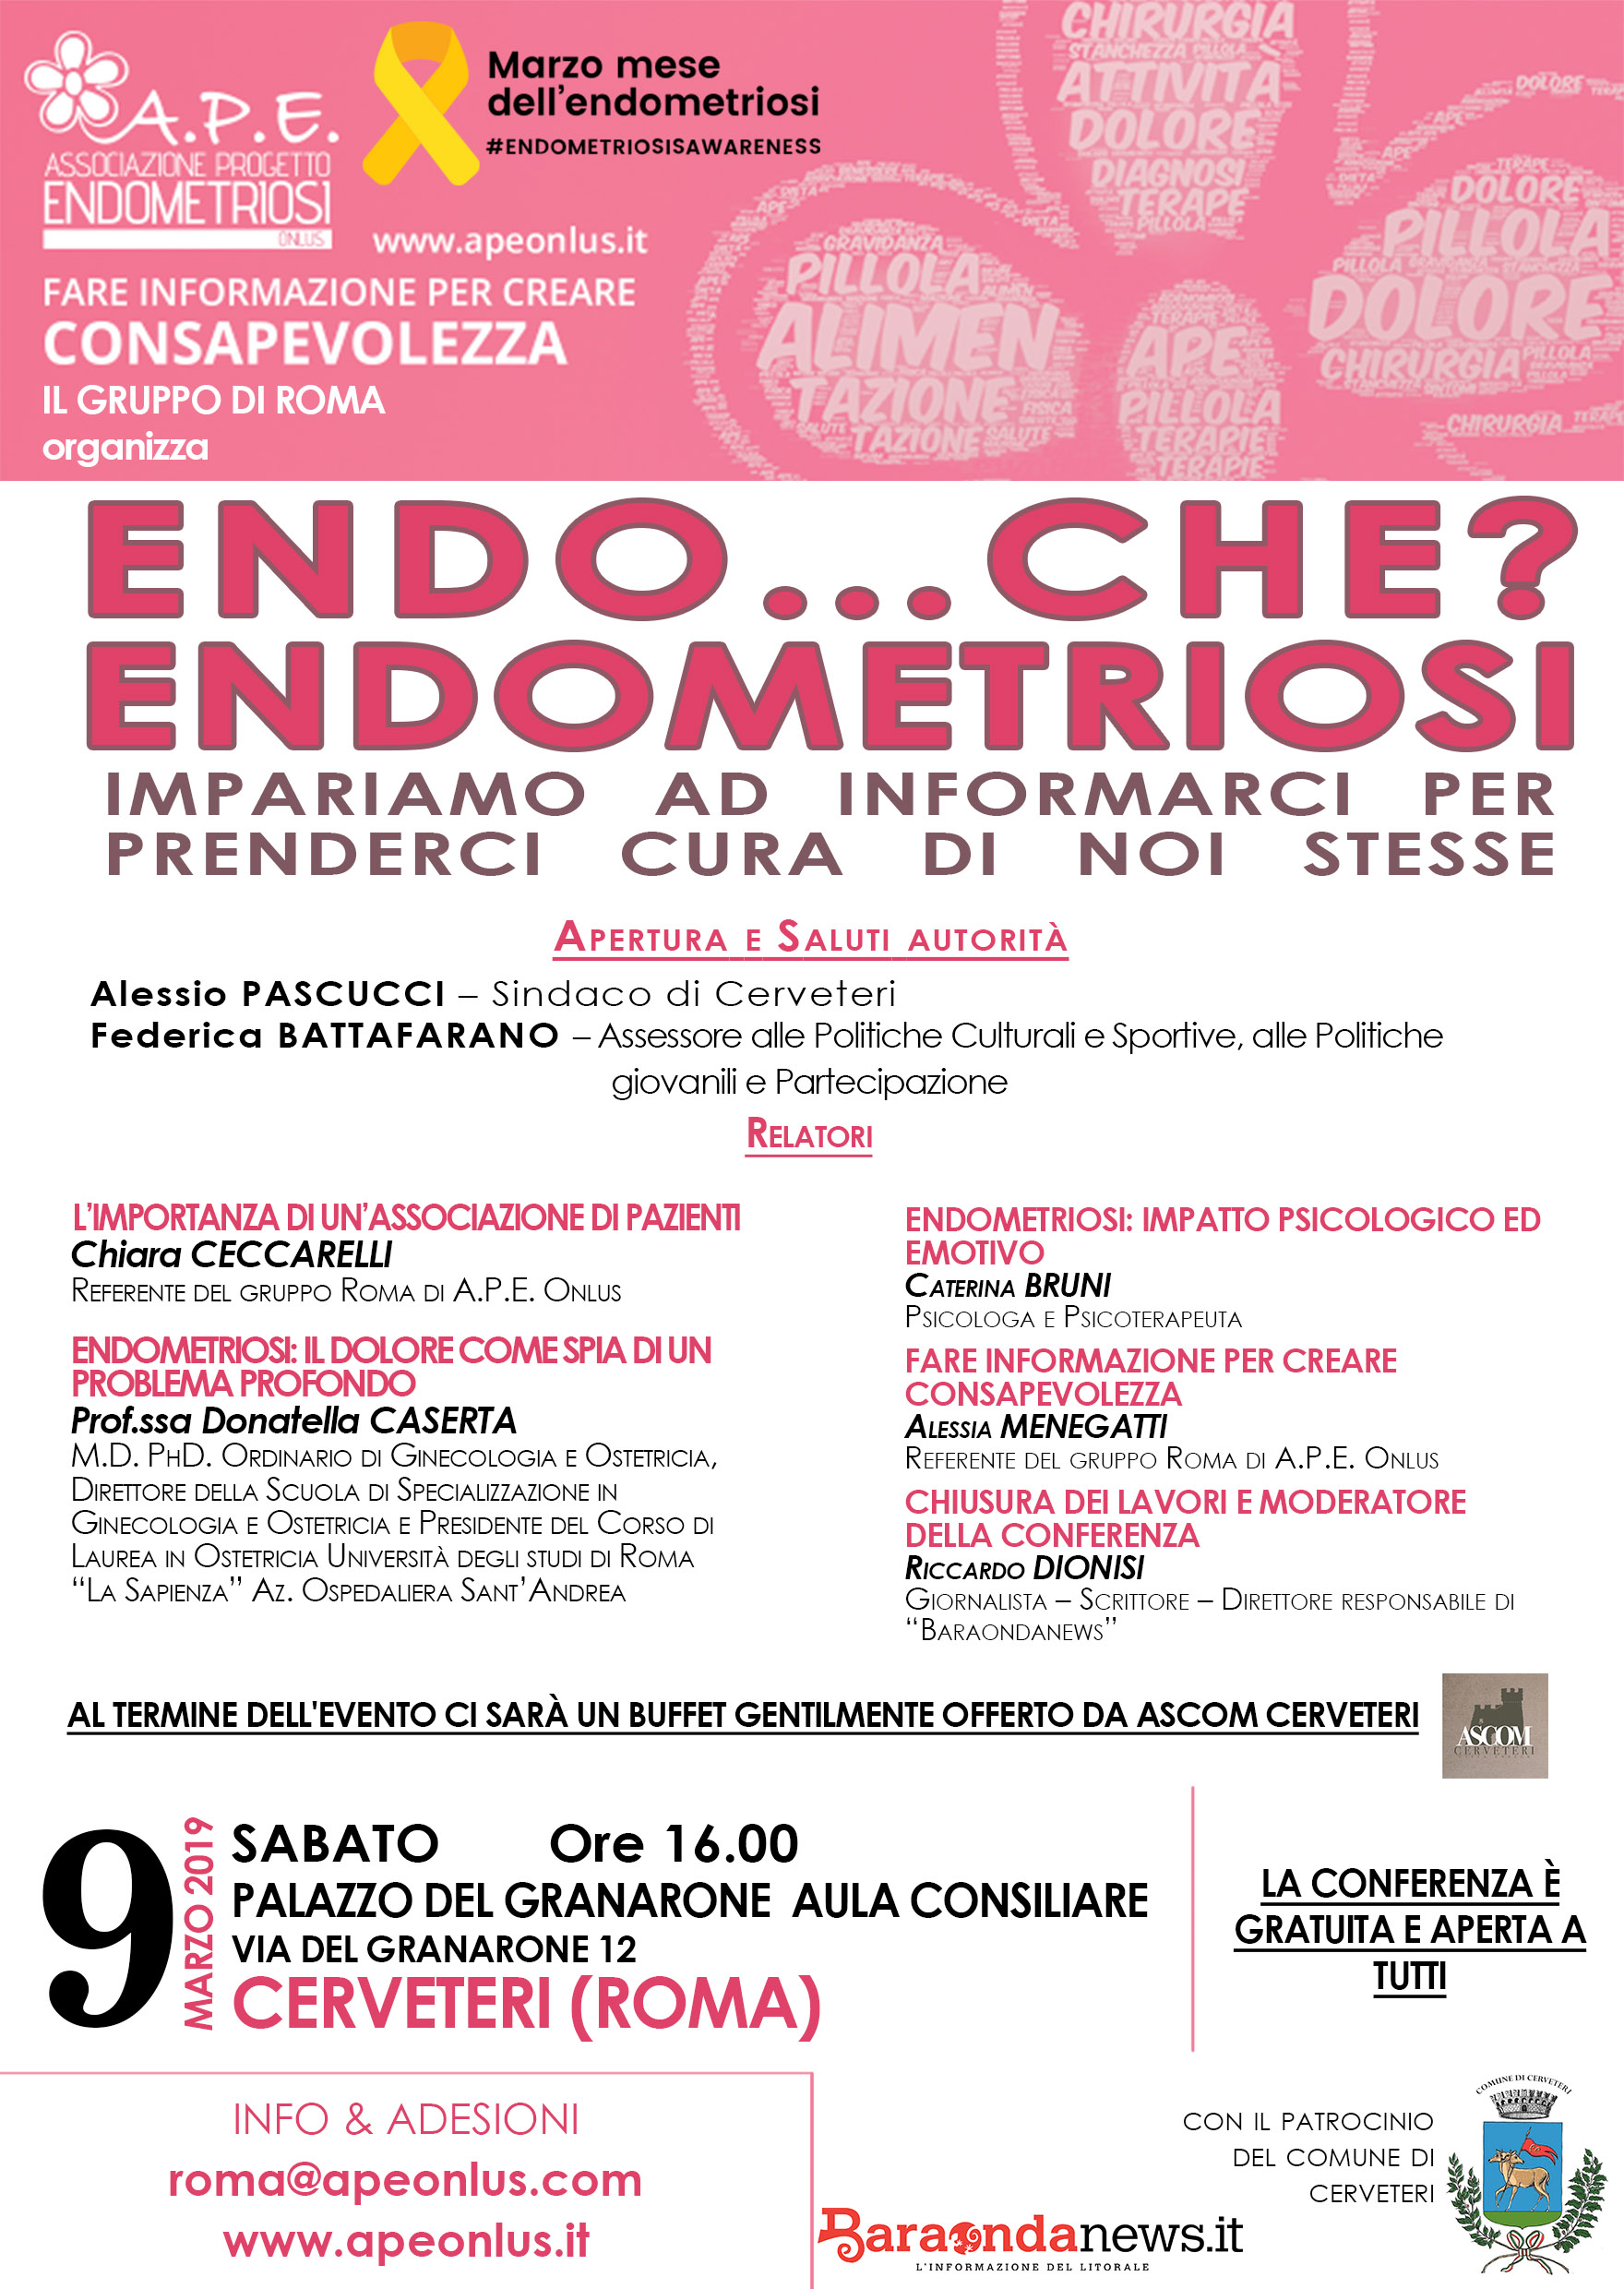 piano di dieta per endometriosi